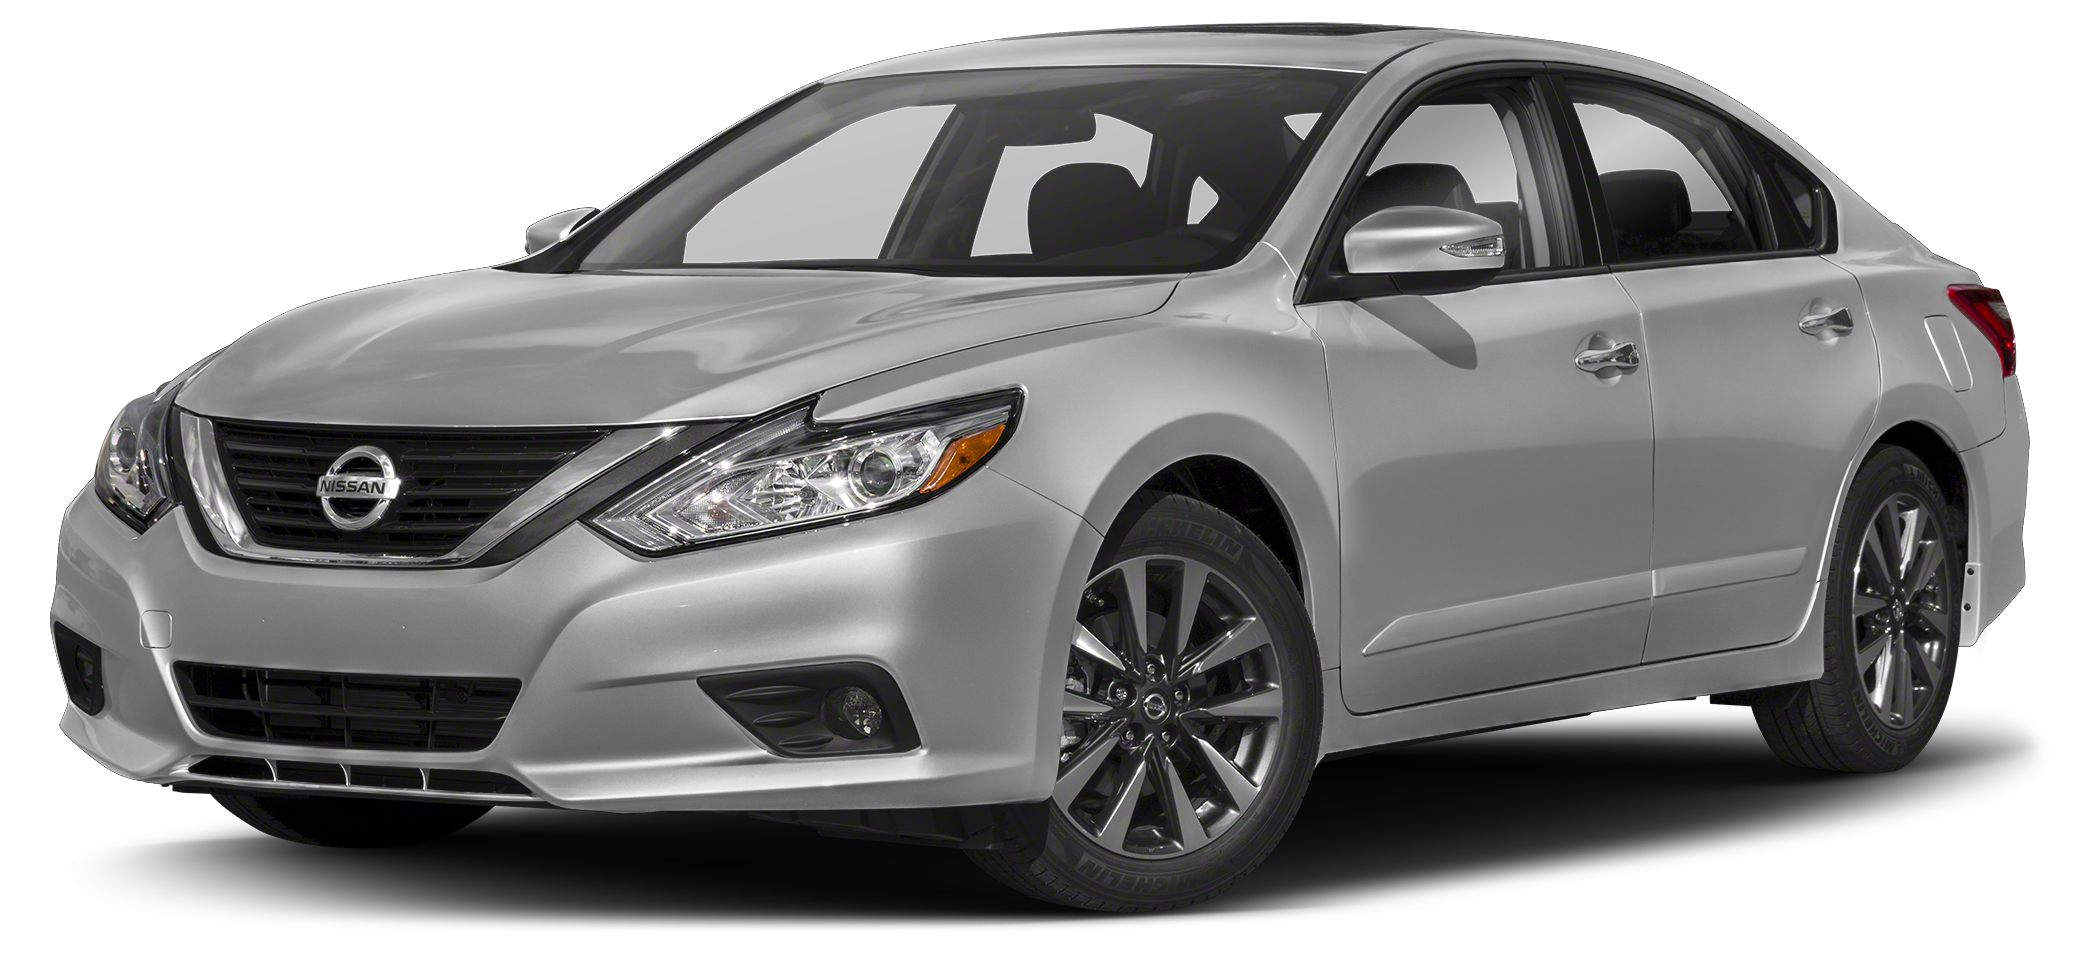 2016 Nissan Altima 25 SL This 2016 Nissan Altima 25 SL will sell fast Priced to sell at 3925